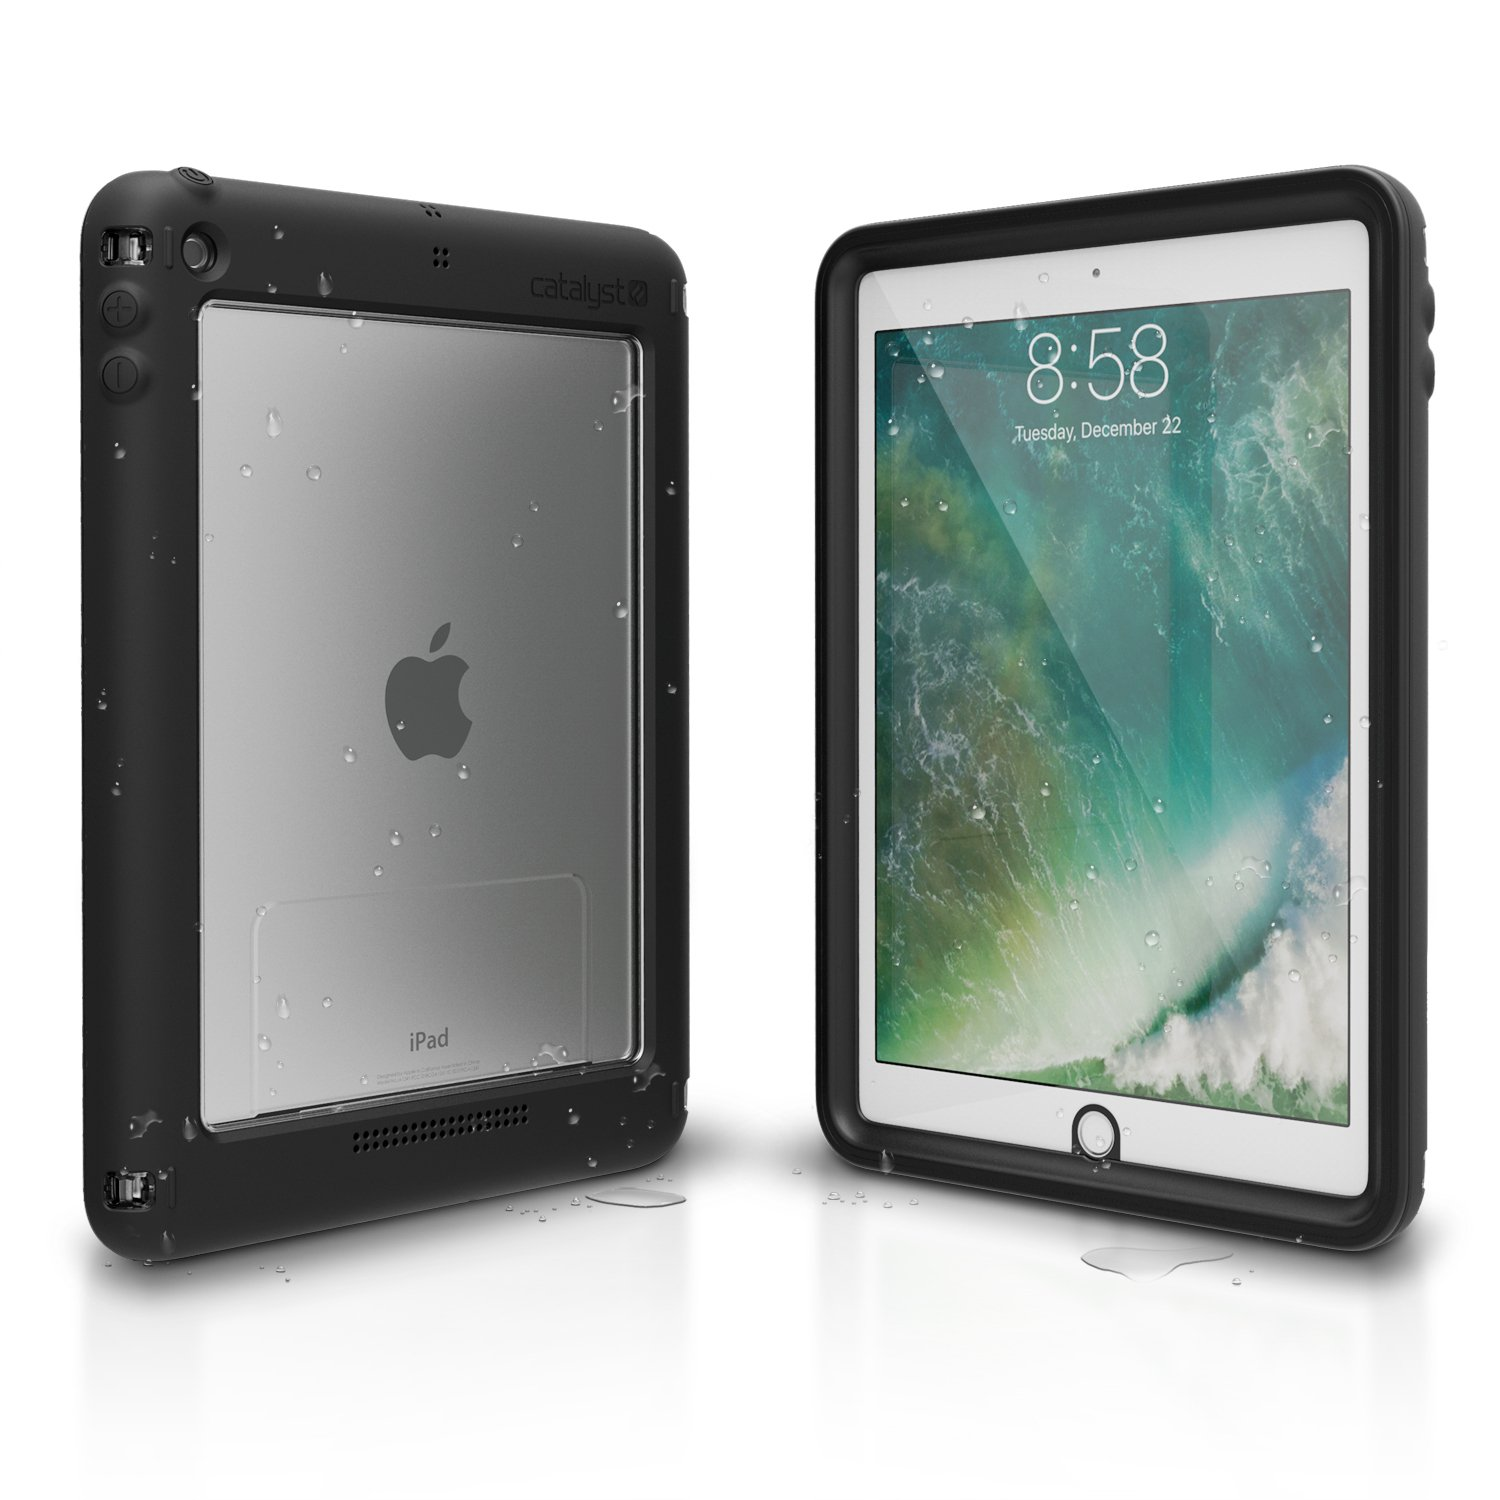 Catalyst iPad 2017 case [Smart Waterproof Shockproof] iPad 9.7 inch Protective Case [New Apple tablet iPad 5th generation] Premium Quality Cover, High Touch Sensitivity, Multi Position Stand (Black) by Catalyst